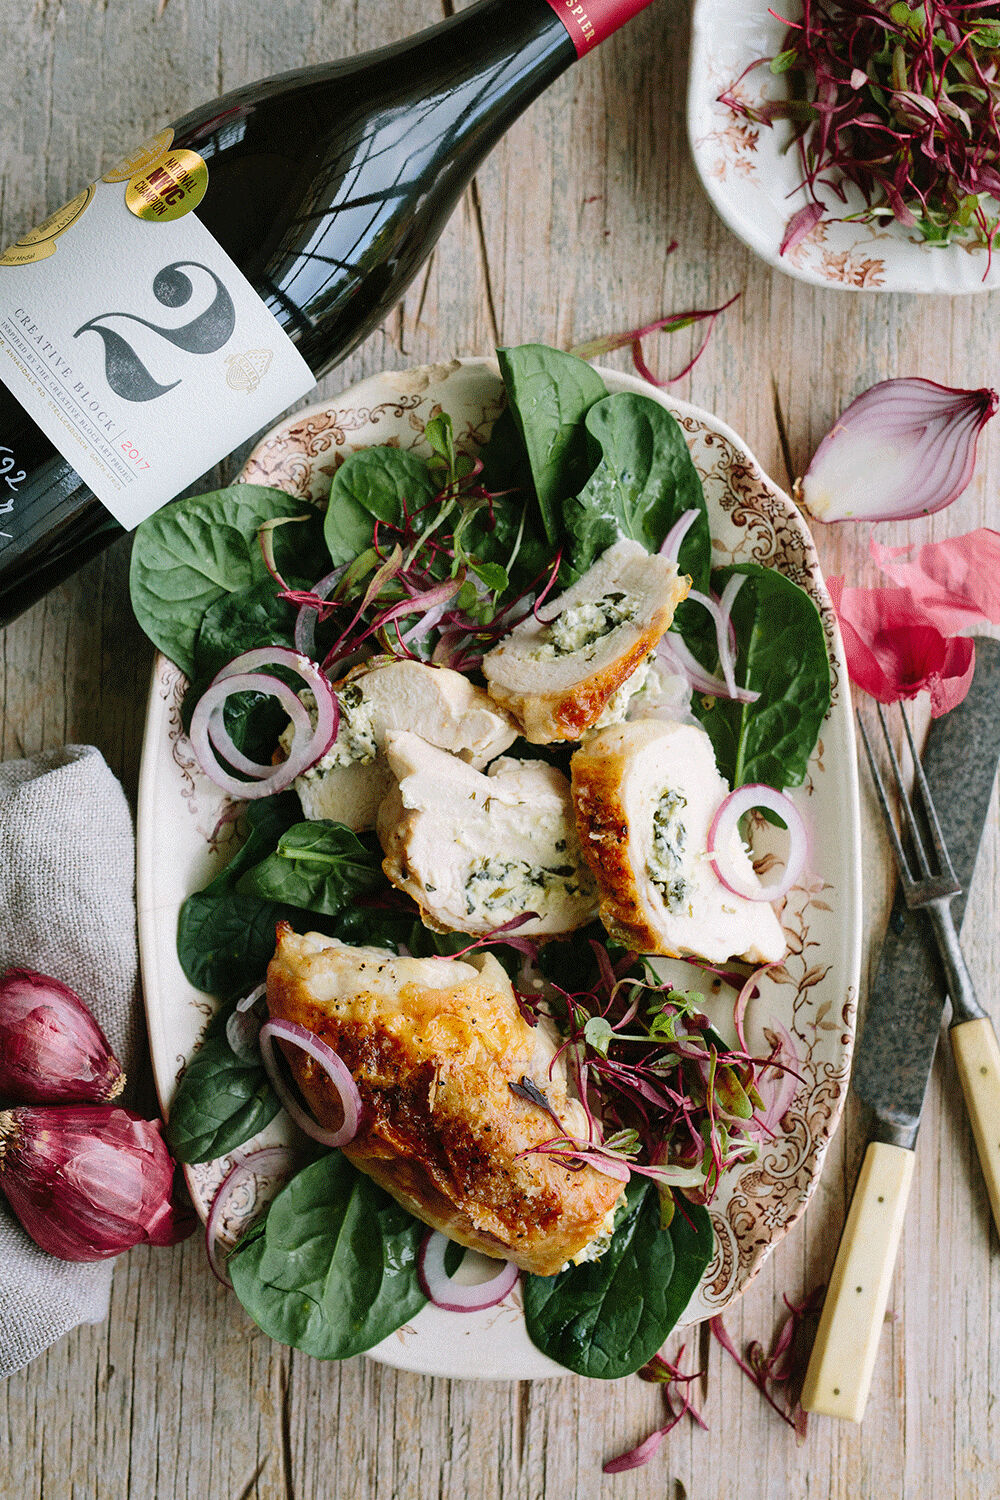 STUFFED CHICKEN BREAST WITH GOATS CHEESE, SPINACH & LEMON